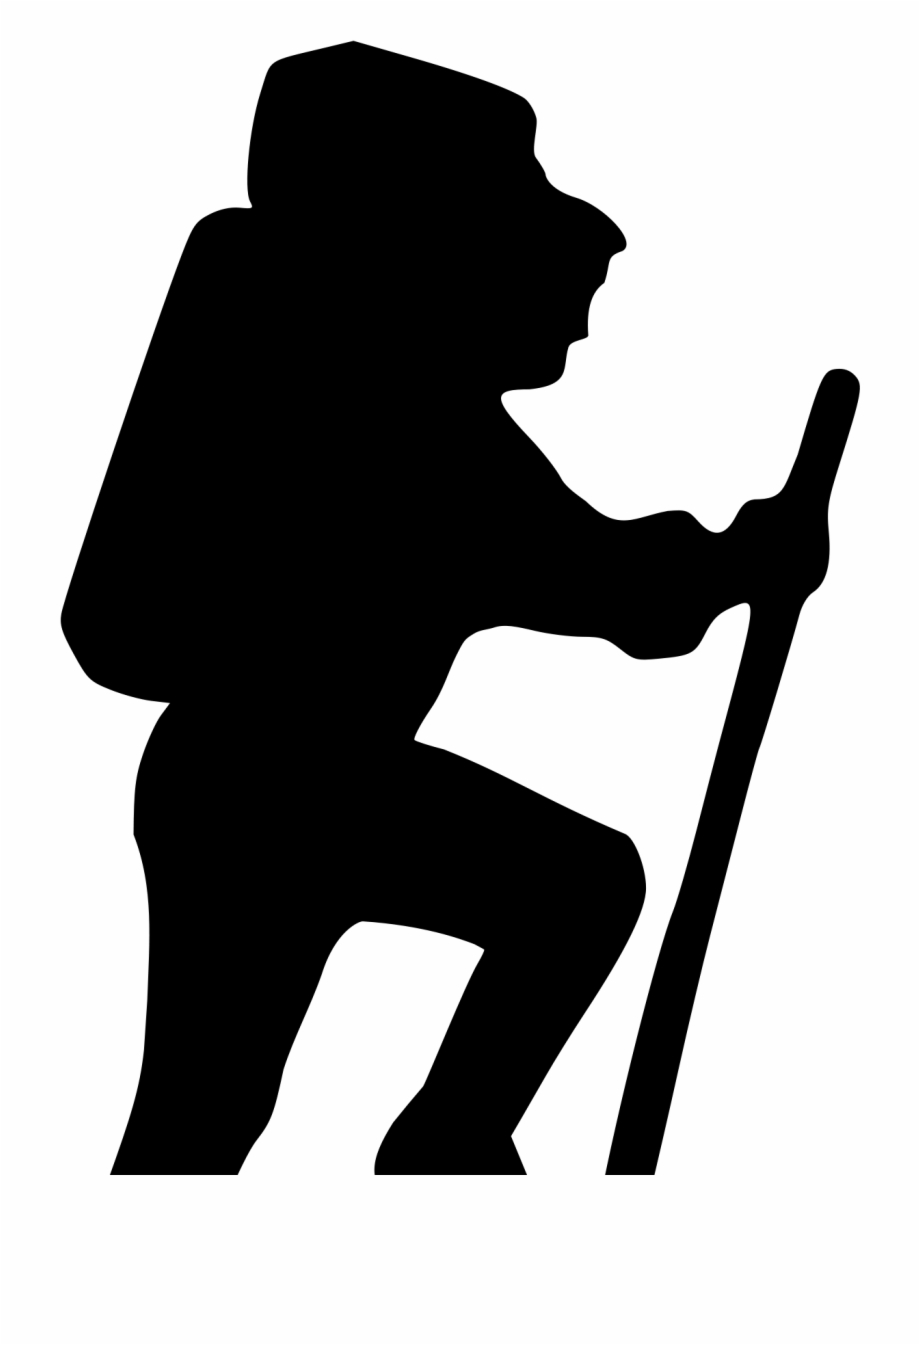 Hiker silhouette clip art. Hiking clipart wandered